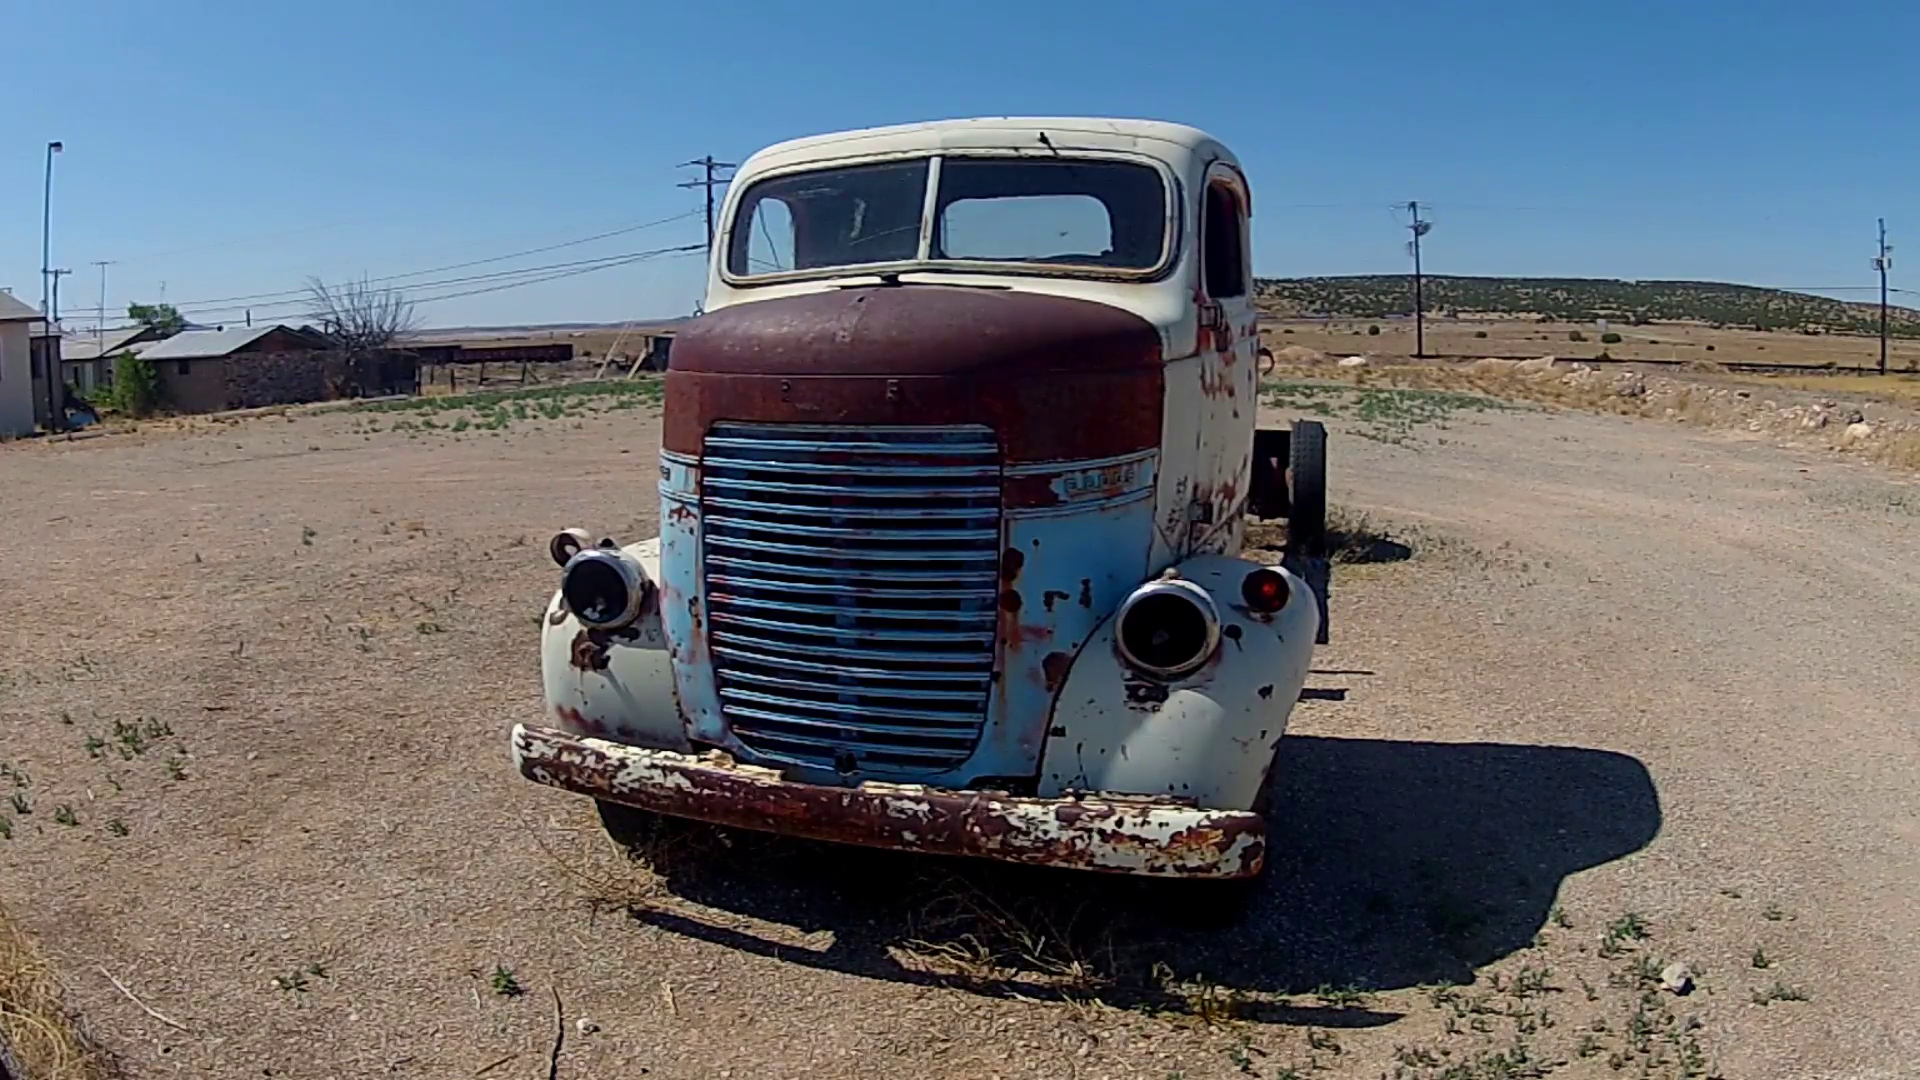 Junked Rusty Old Truck On Side Of Road- Wide Stock Video Footage -  VideoBlocks - Old Truck PNG HD